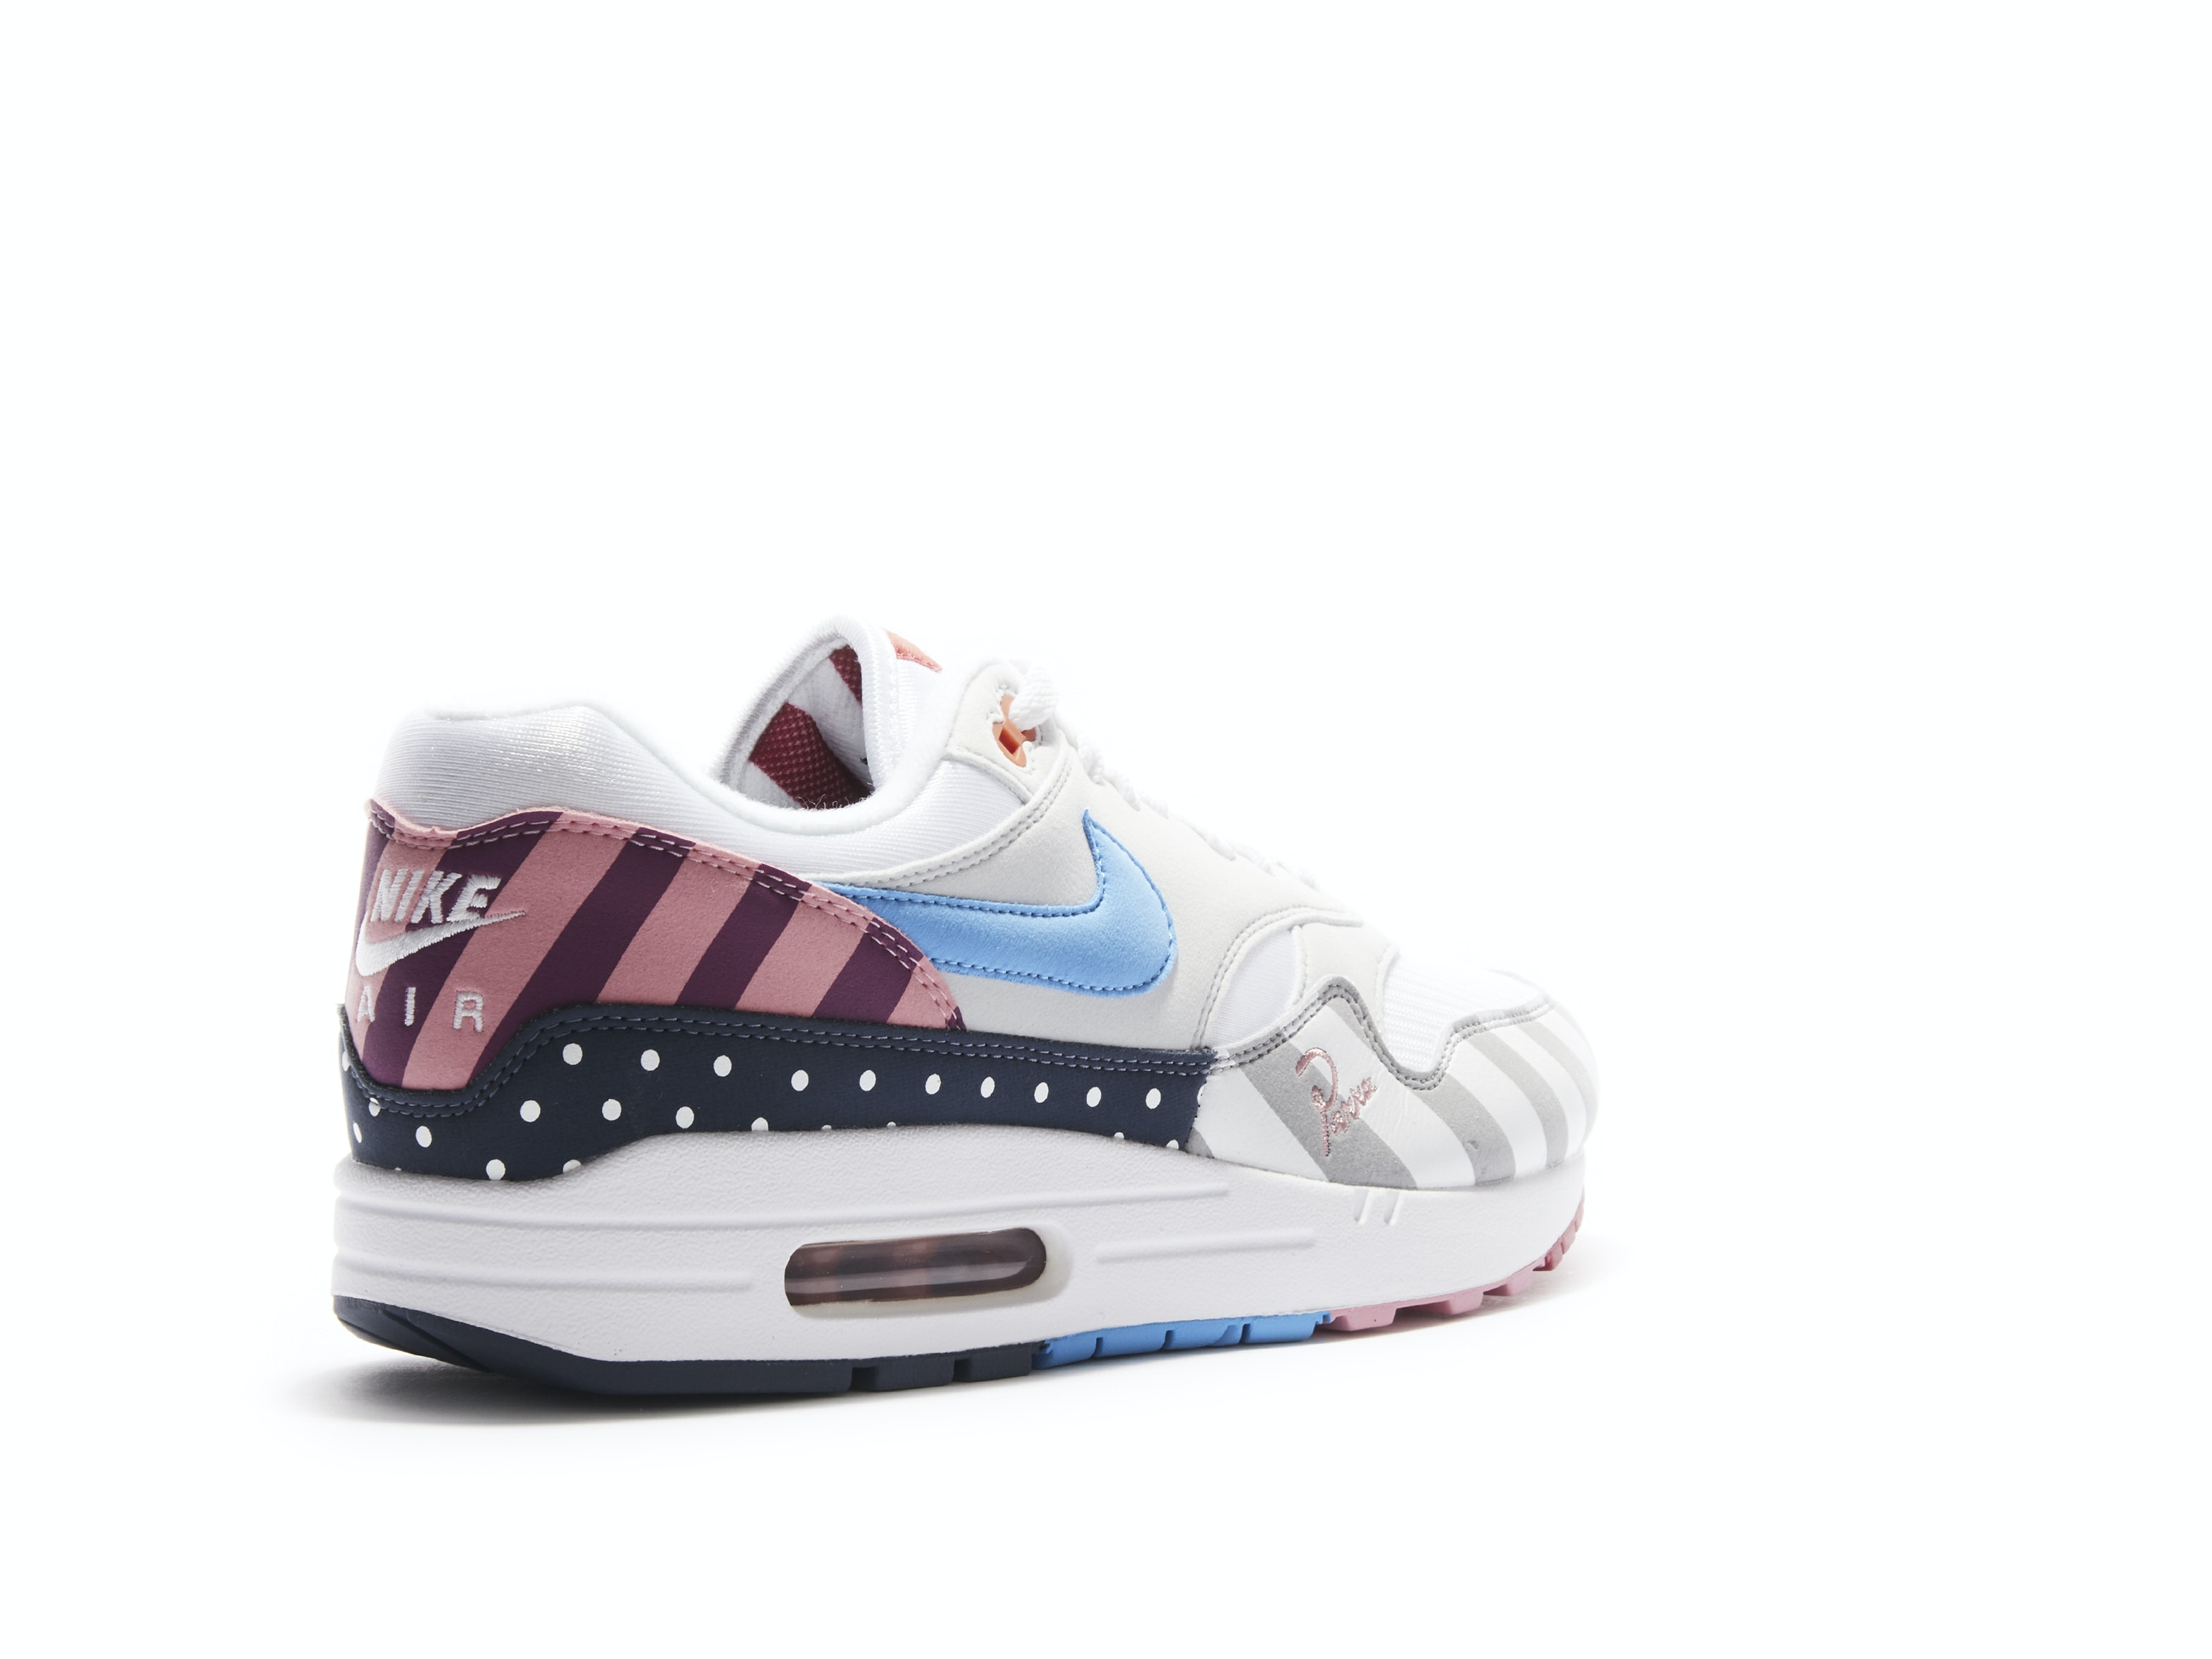 pretty nice 15ed4 3dbdf Air Max 1 x Parra. 100% AuthenticSold out! Nike   AT3057-100